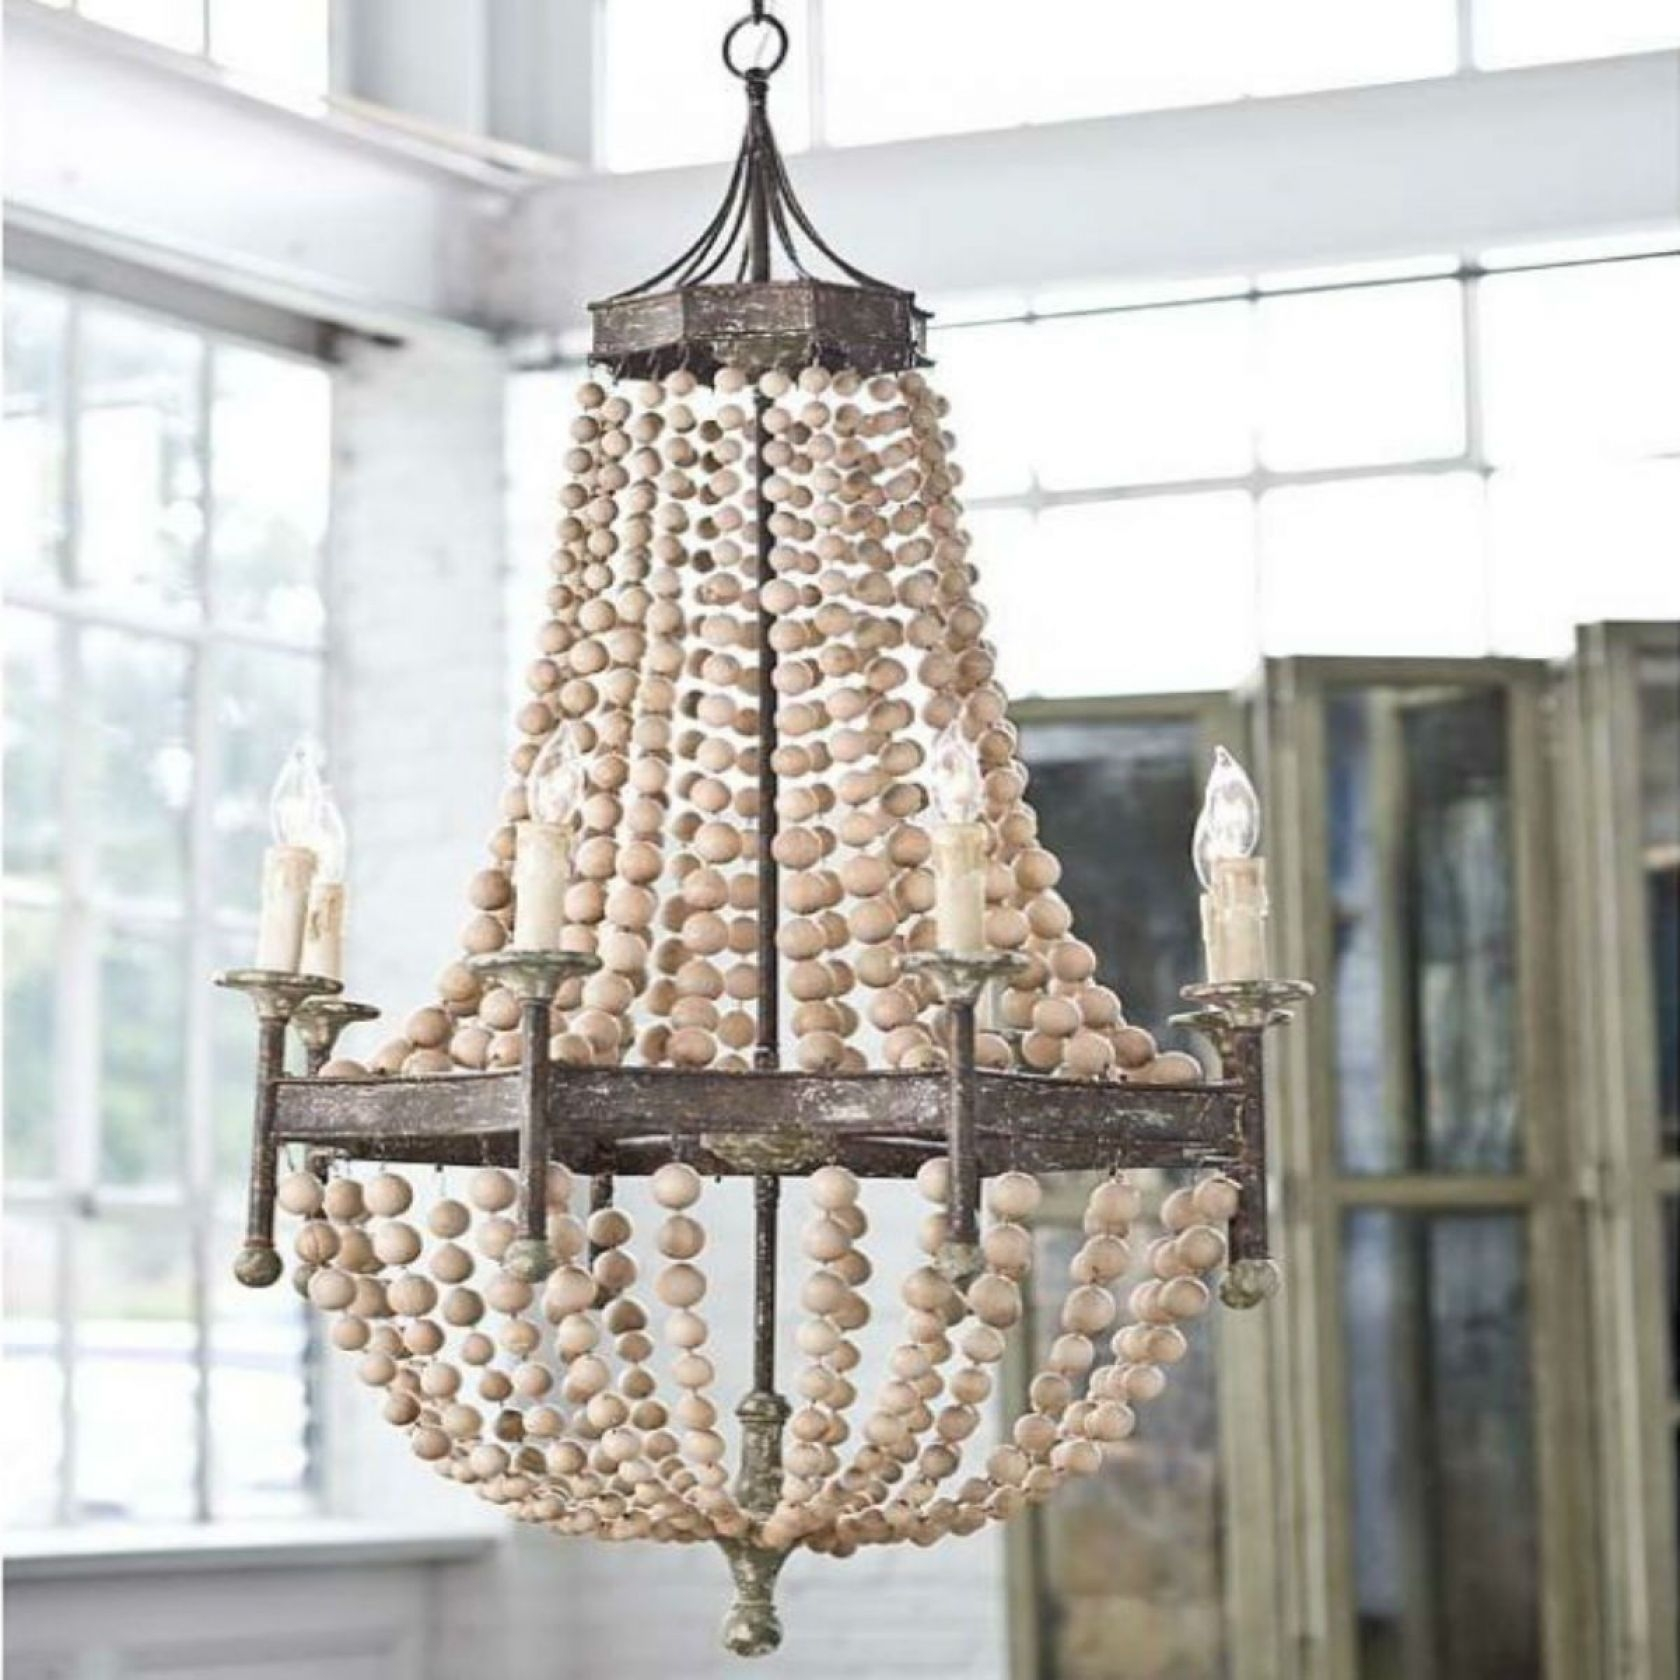 Coastal Chandeliers Iron Rope Driftwood Sea Glass Nautical Throughout Large Turquoise Chandeliers (View 7 of 25)